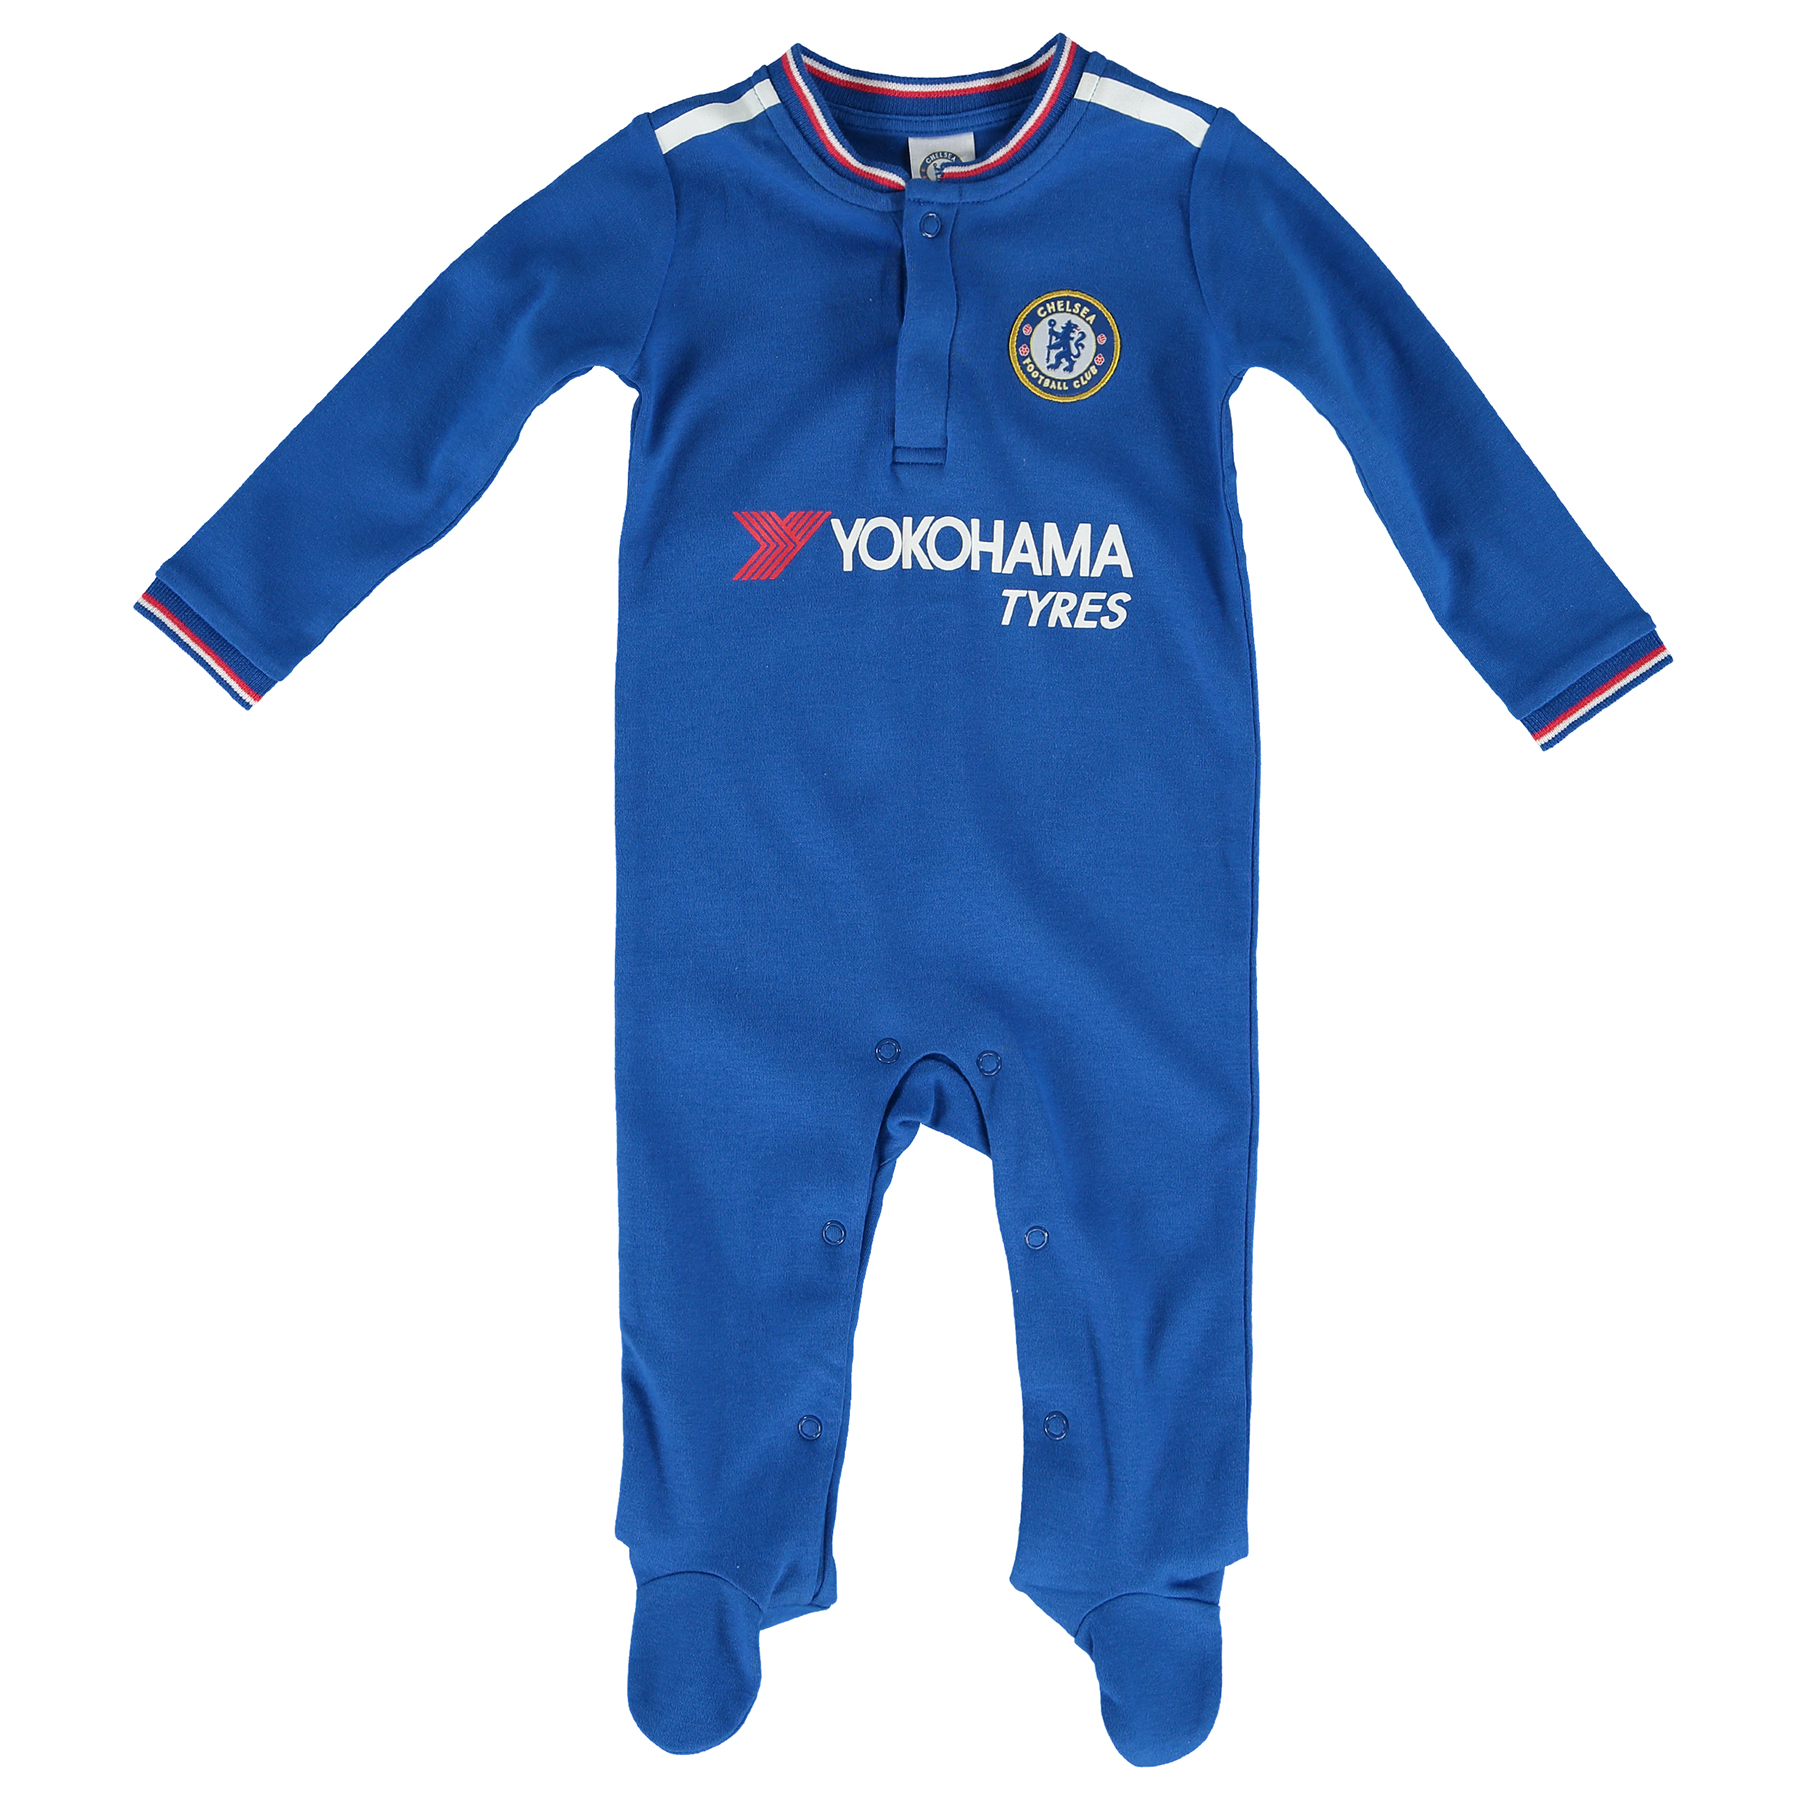 Chelsea Kit Sleepsuit - Royal - Baby   Woven club crest. Printed club sponsor. Popper fastenings. Tipped neckline and cuffs. 100% Cotton (excluding trims). Machine washable.